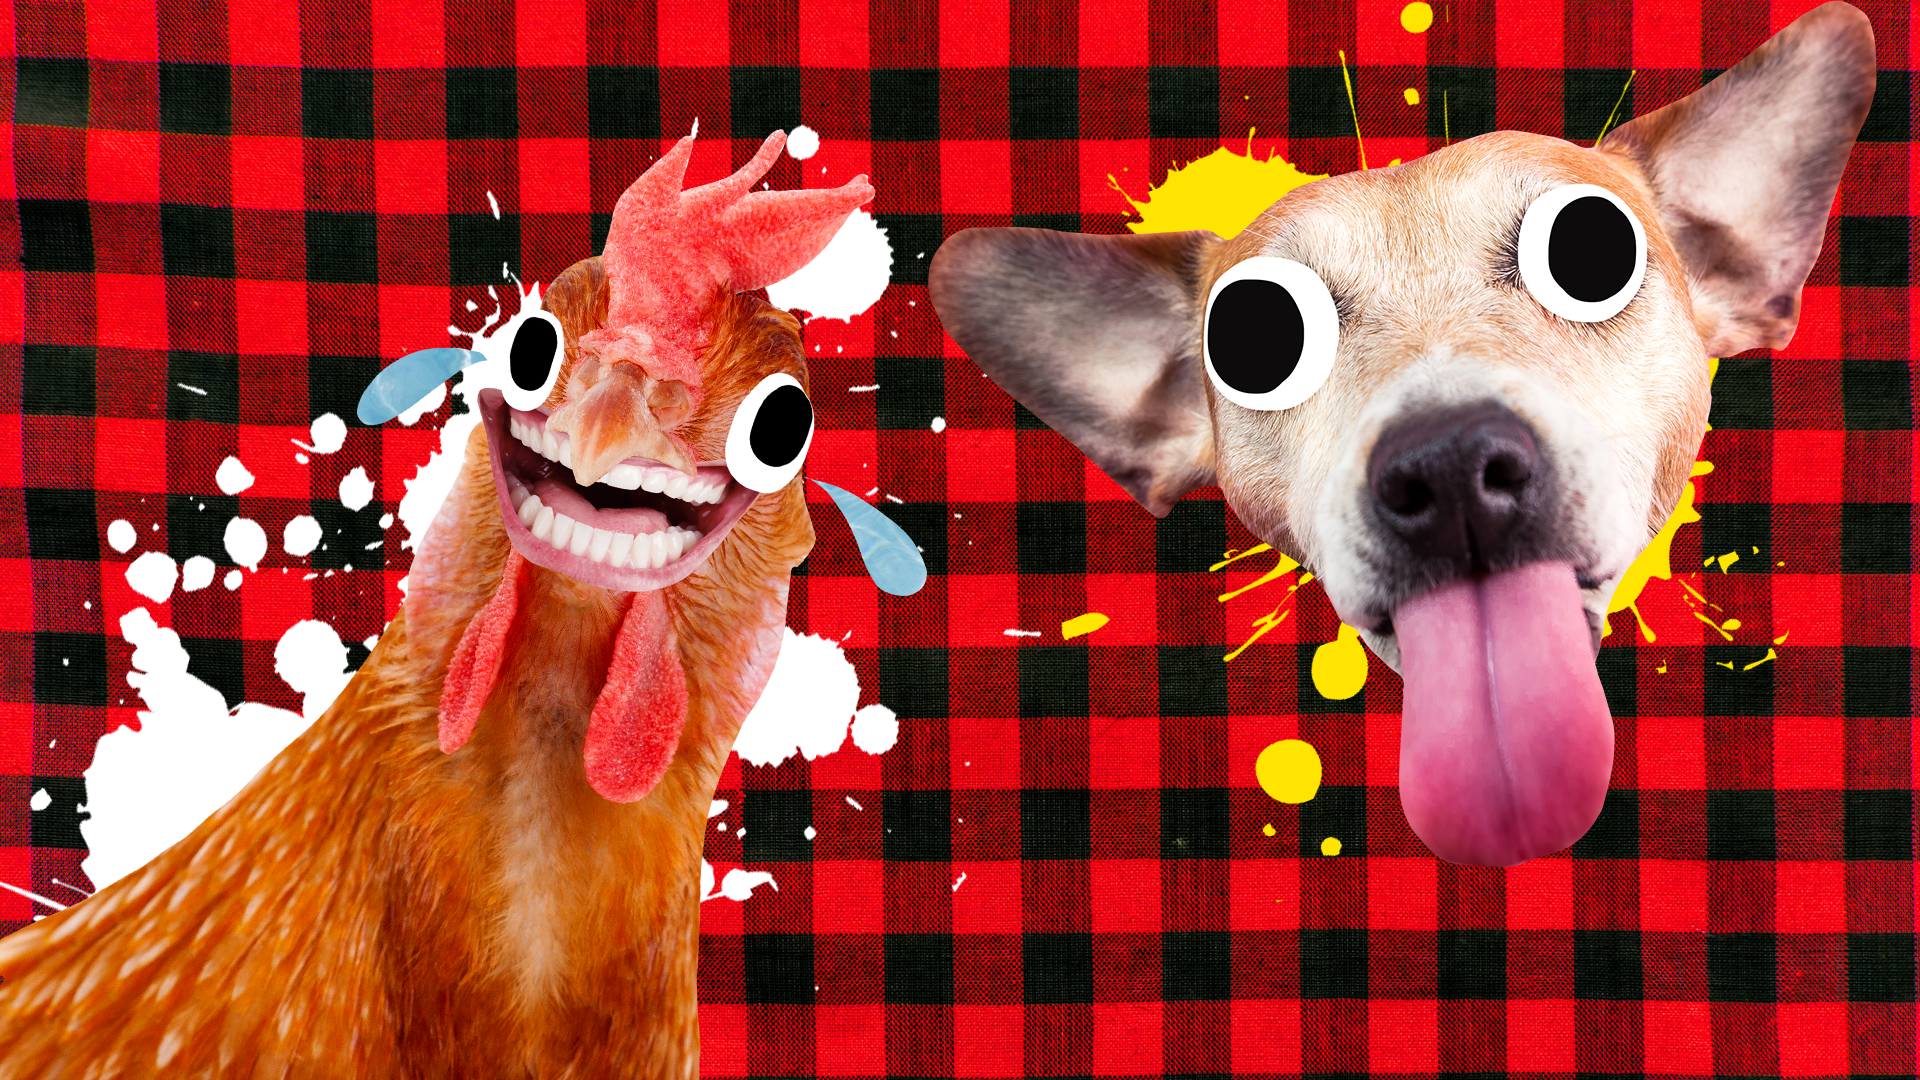 A laughing chicken and dog